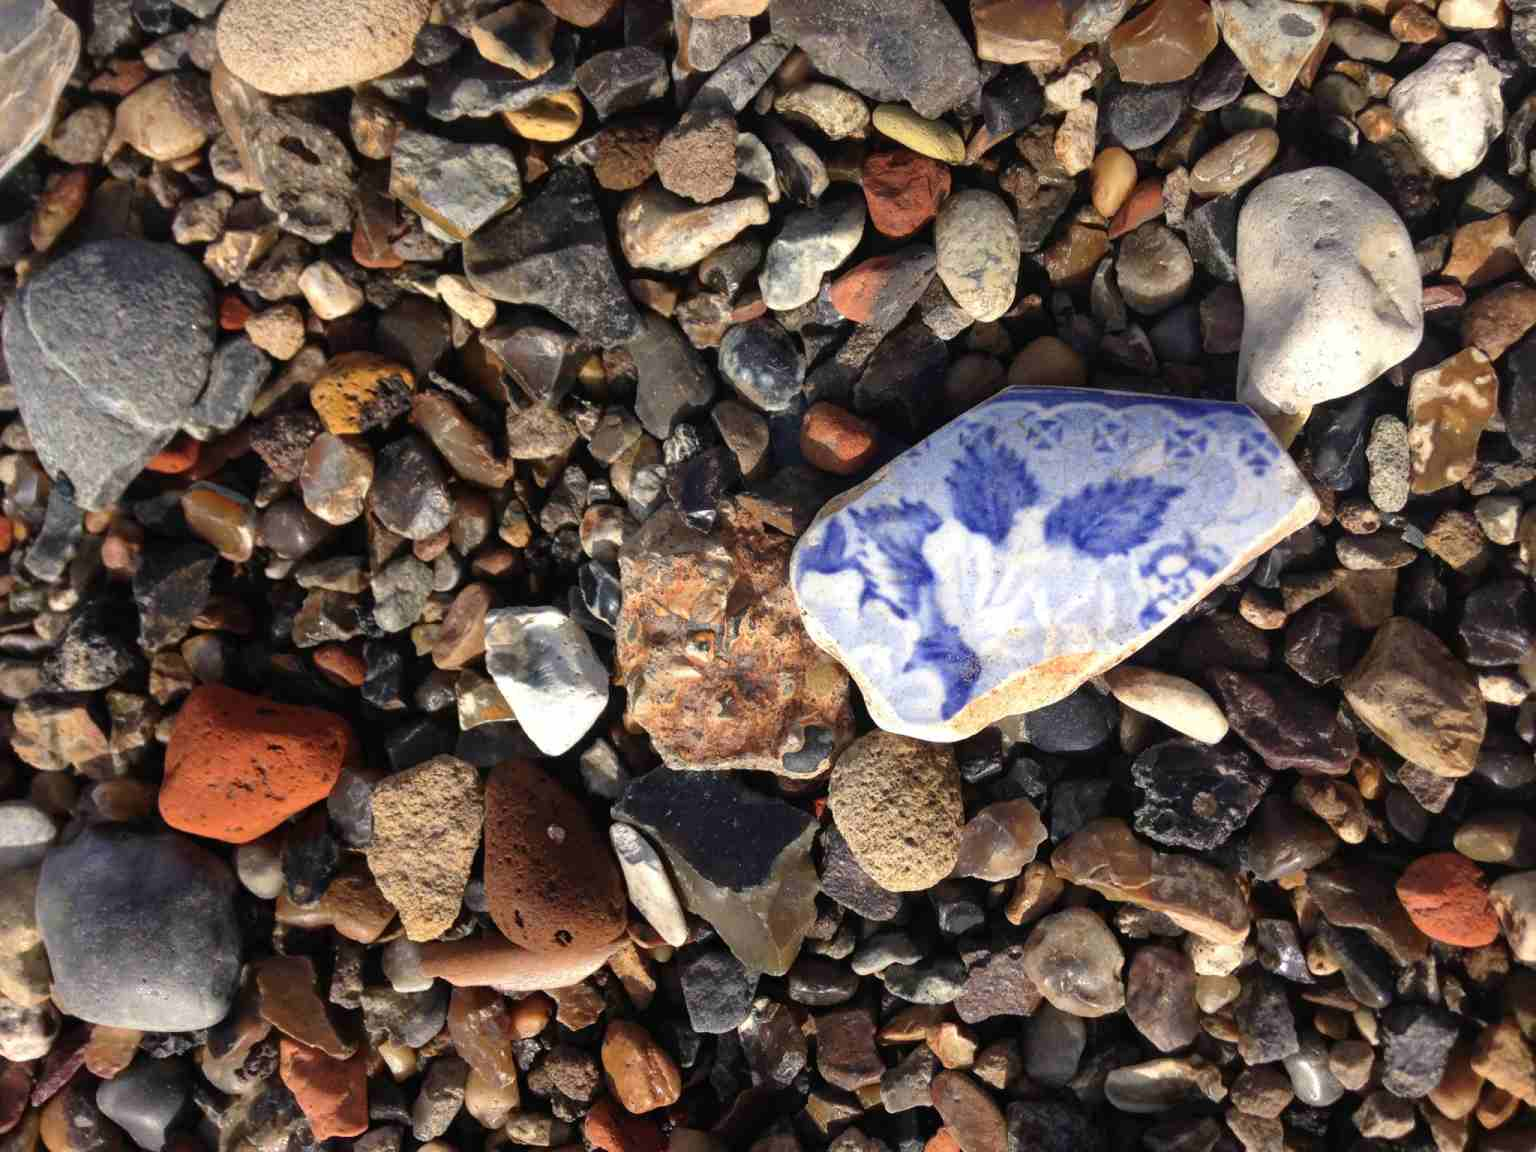 a small piece of pottery on the beach